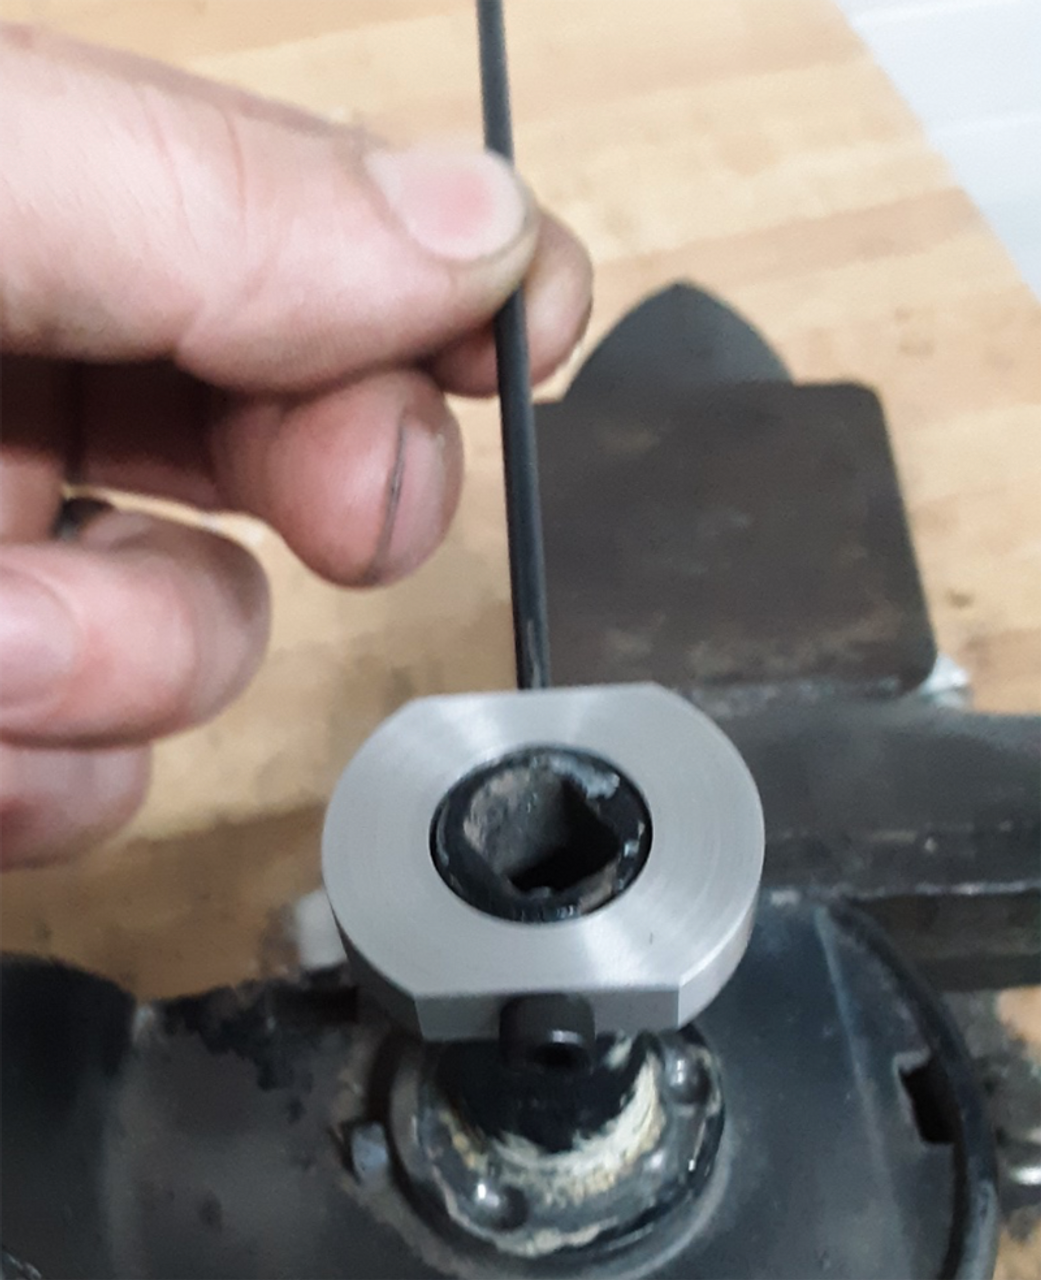 80 Series Floppy Mirror Fix (FMF-1)- Install ring with one screw and transfer punch 2nd hole